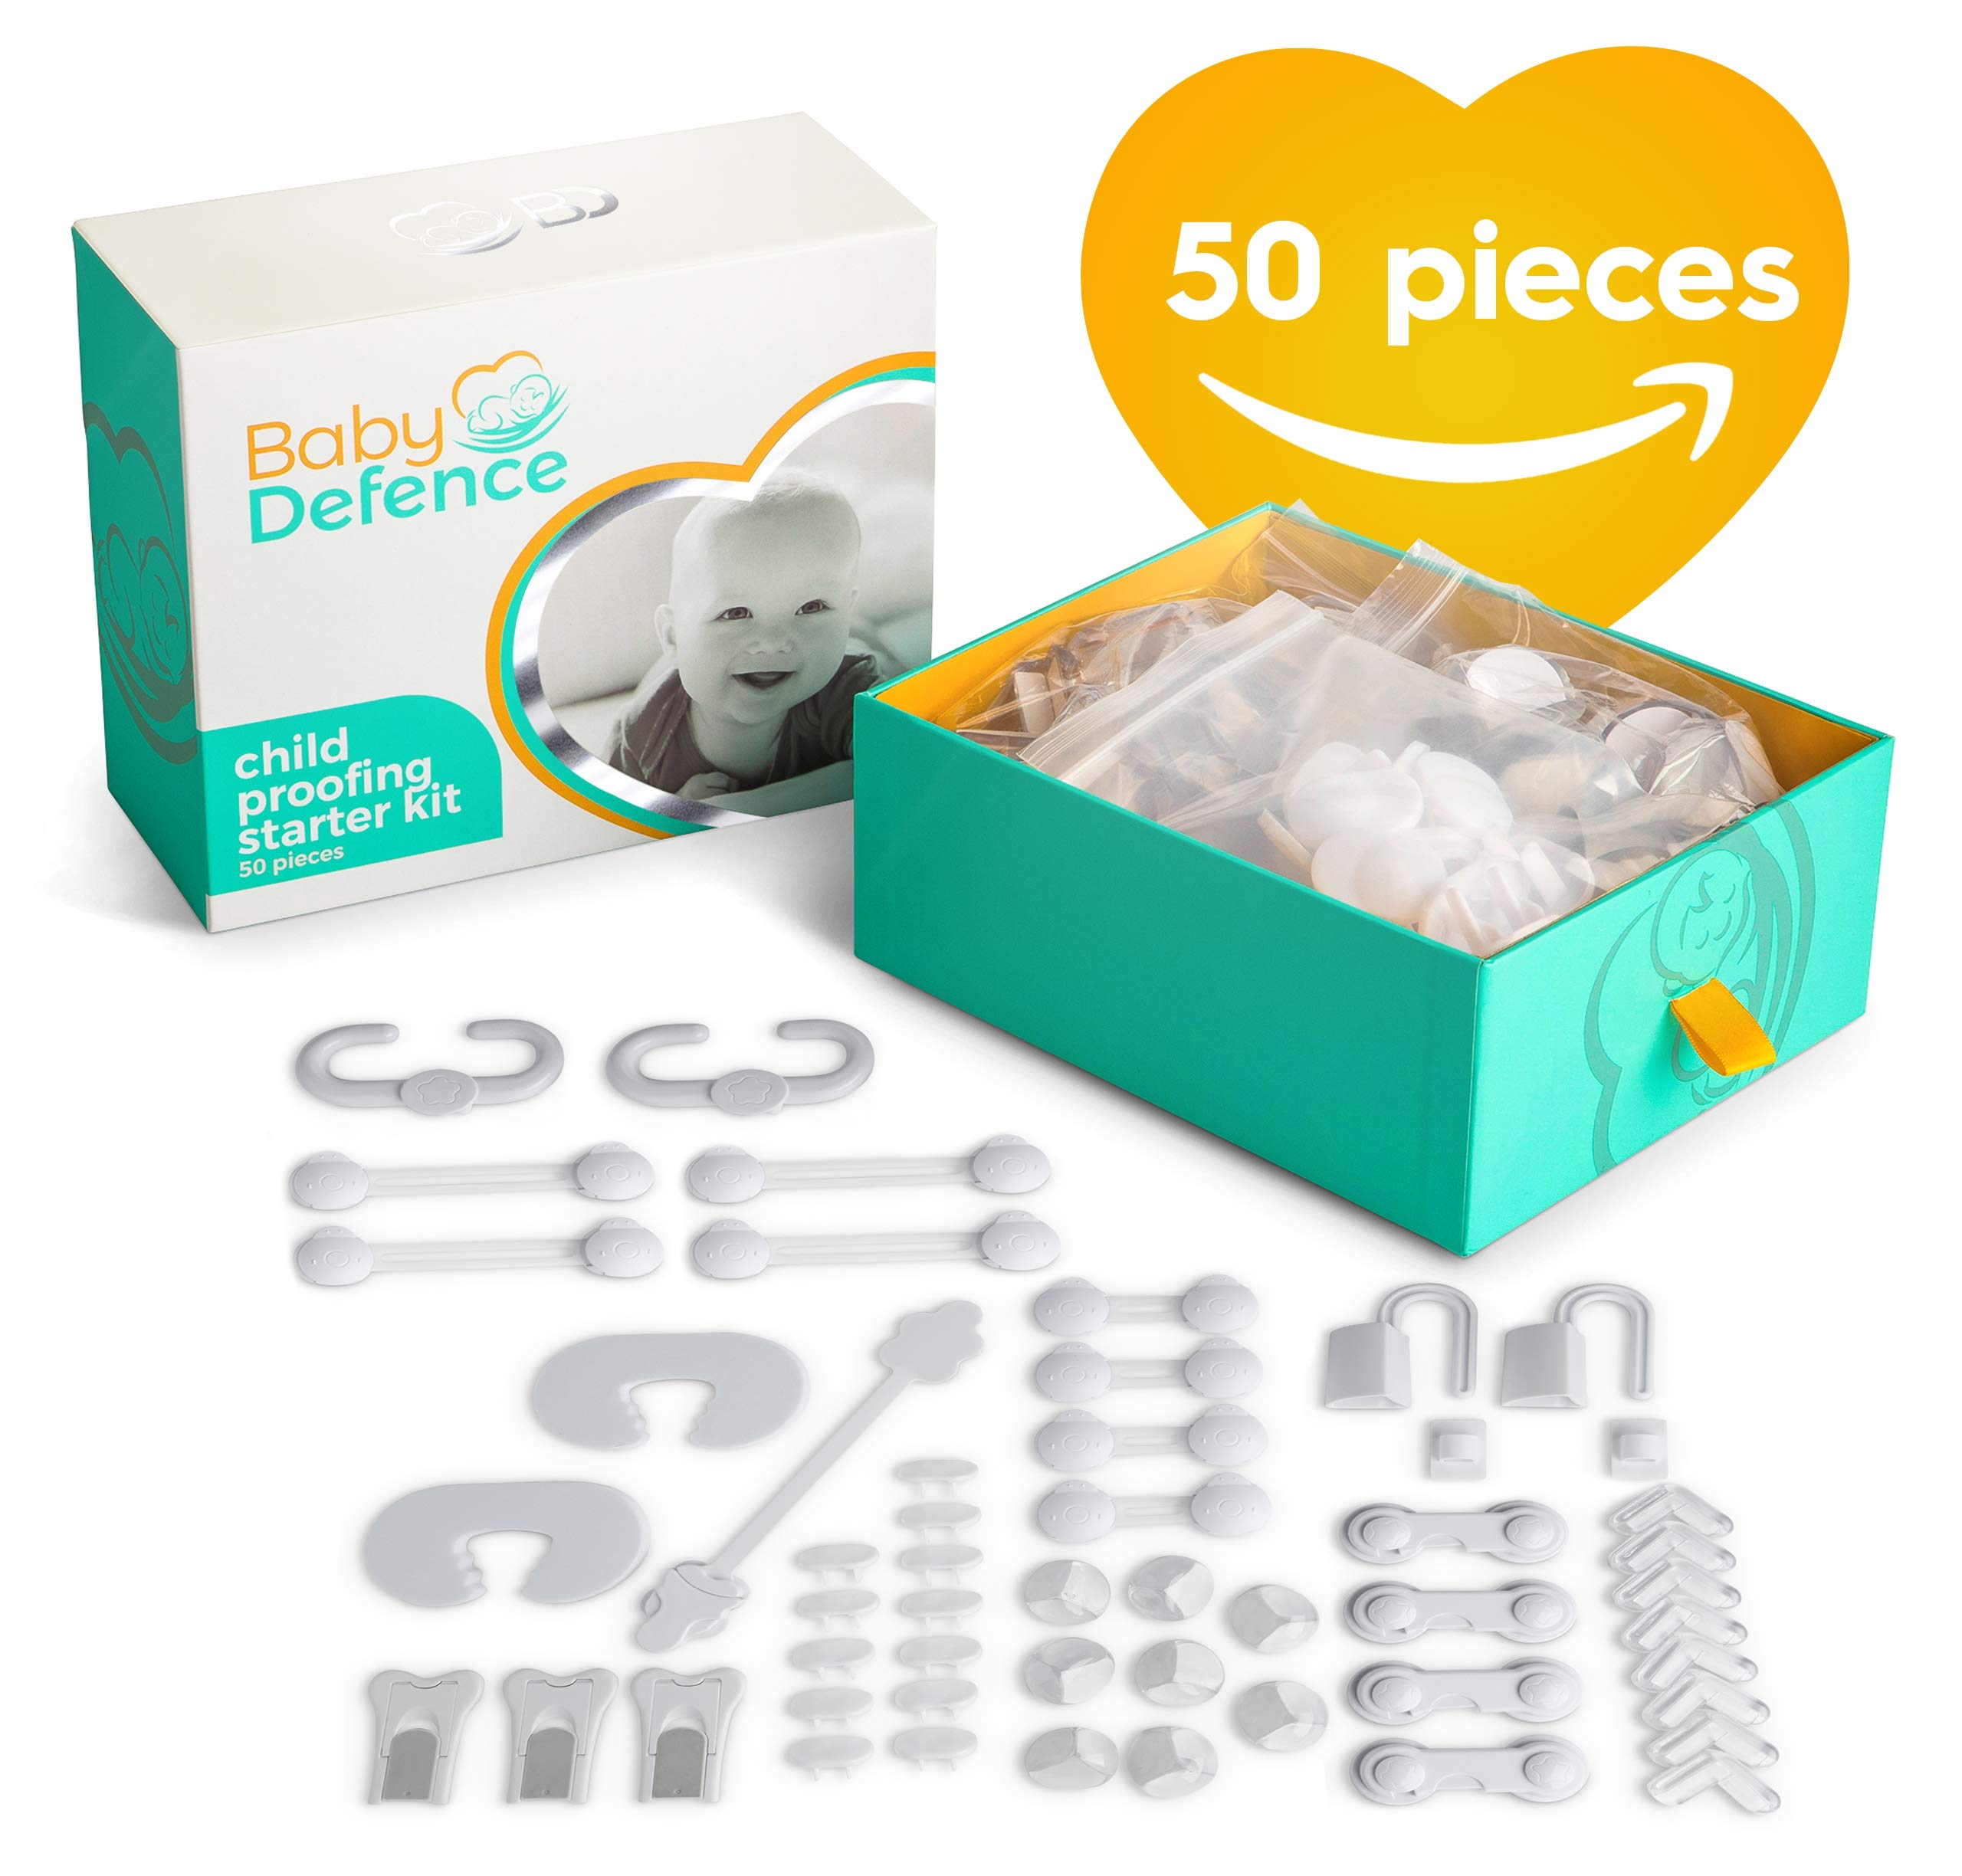 Complete Baby Proofing Kit, 50 pieces,11 different products to Childproof your proof house with Door and Cabinet Locks, Latches & Plug Covers. Essential Baby & Child Safety Kit or Baby Shower Gift set by Baby Defence